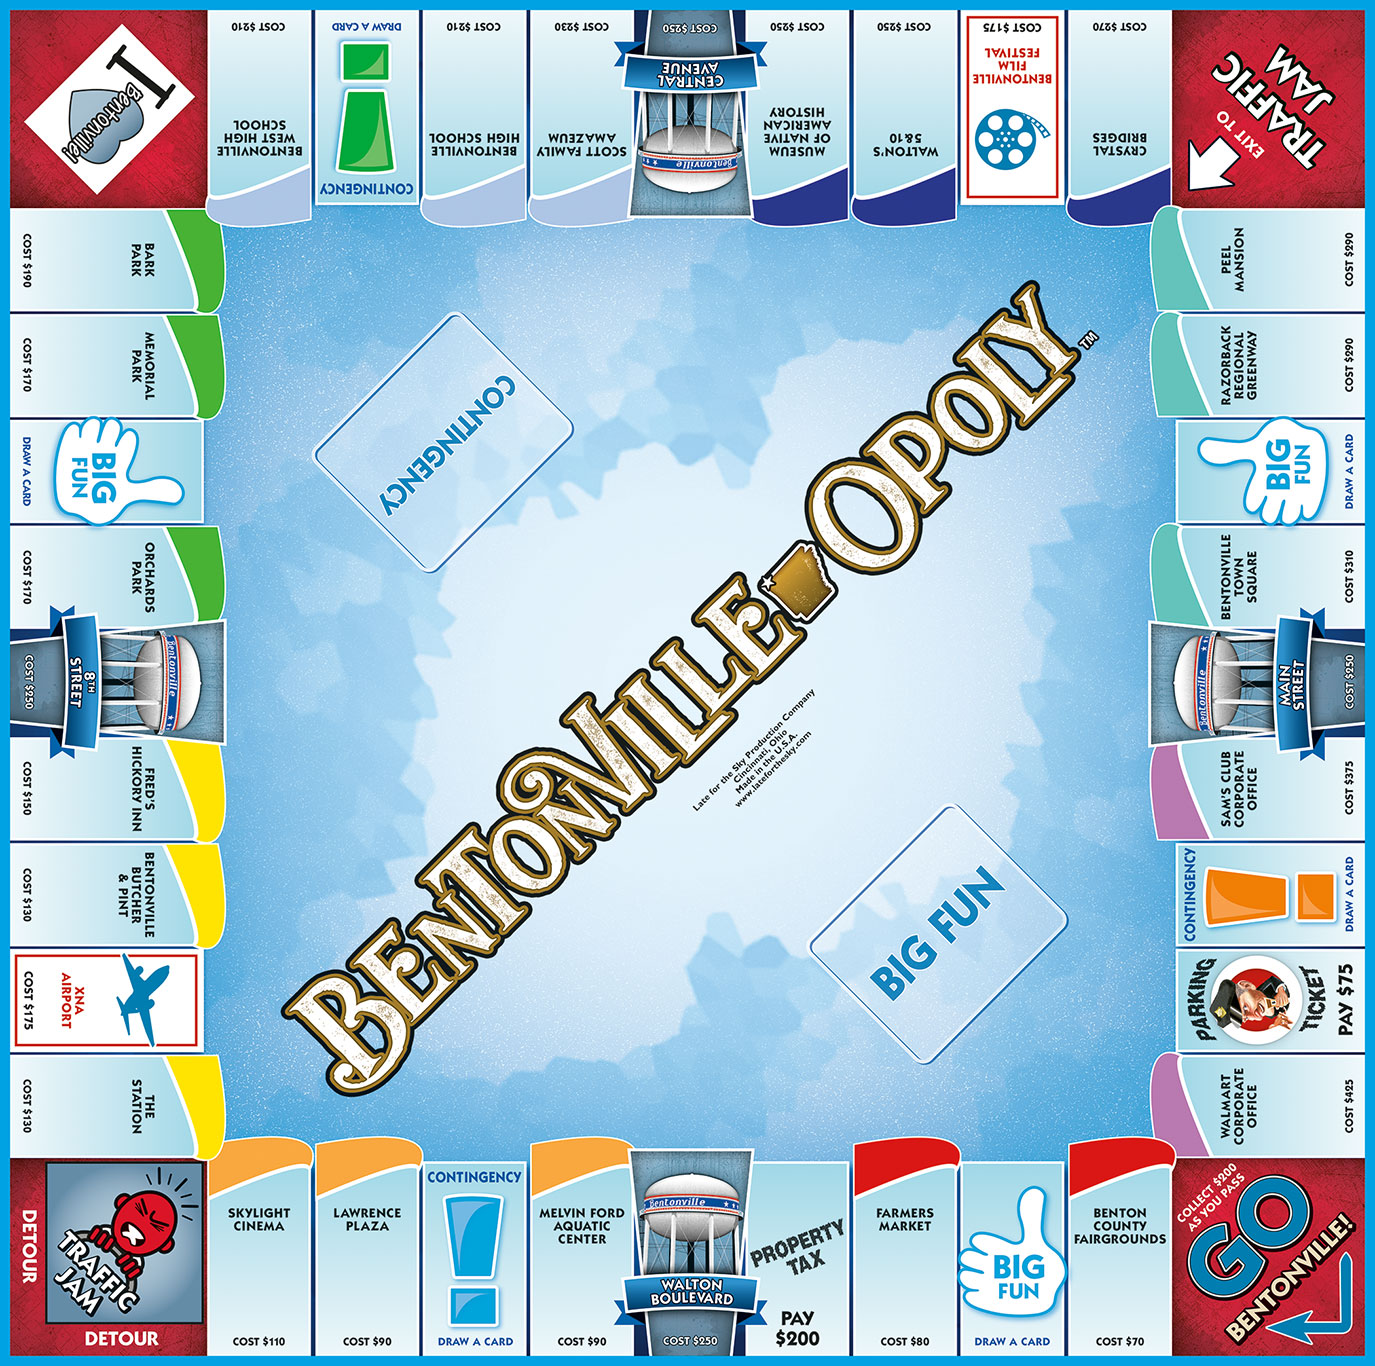 BENTONVILLE-OPOLY Board Game